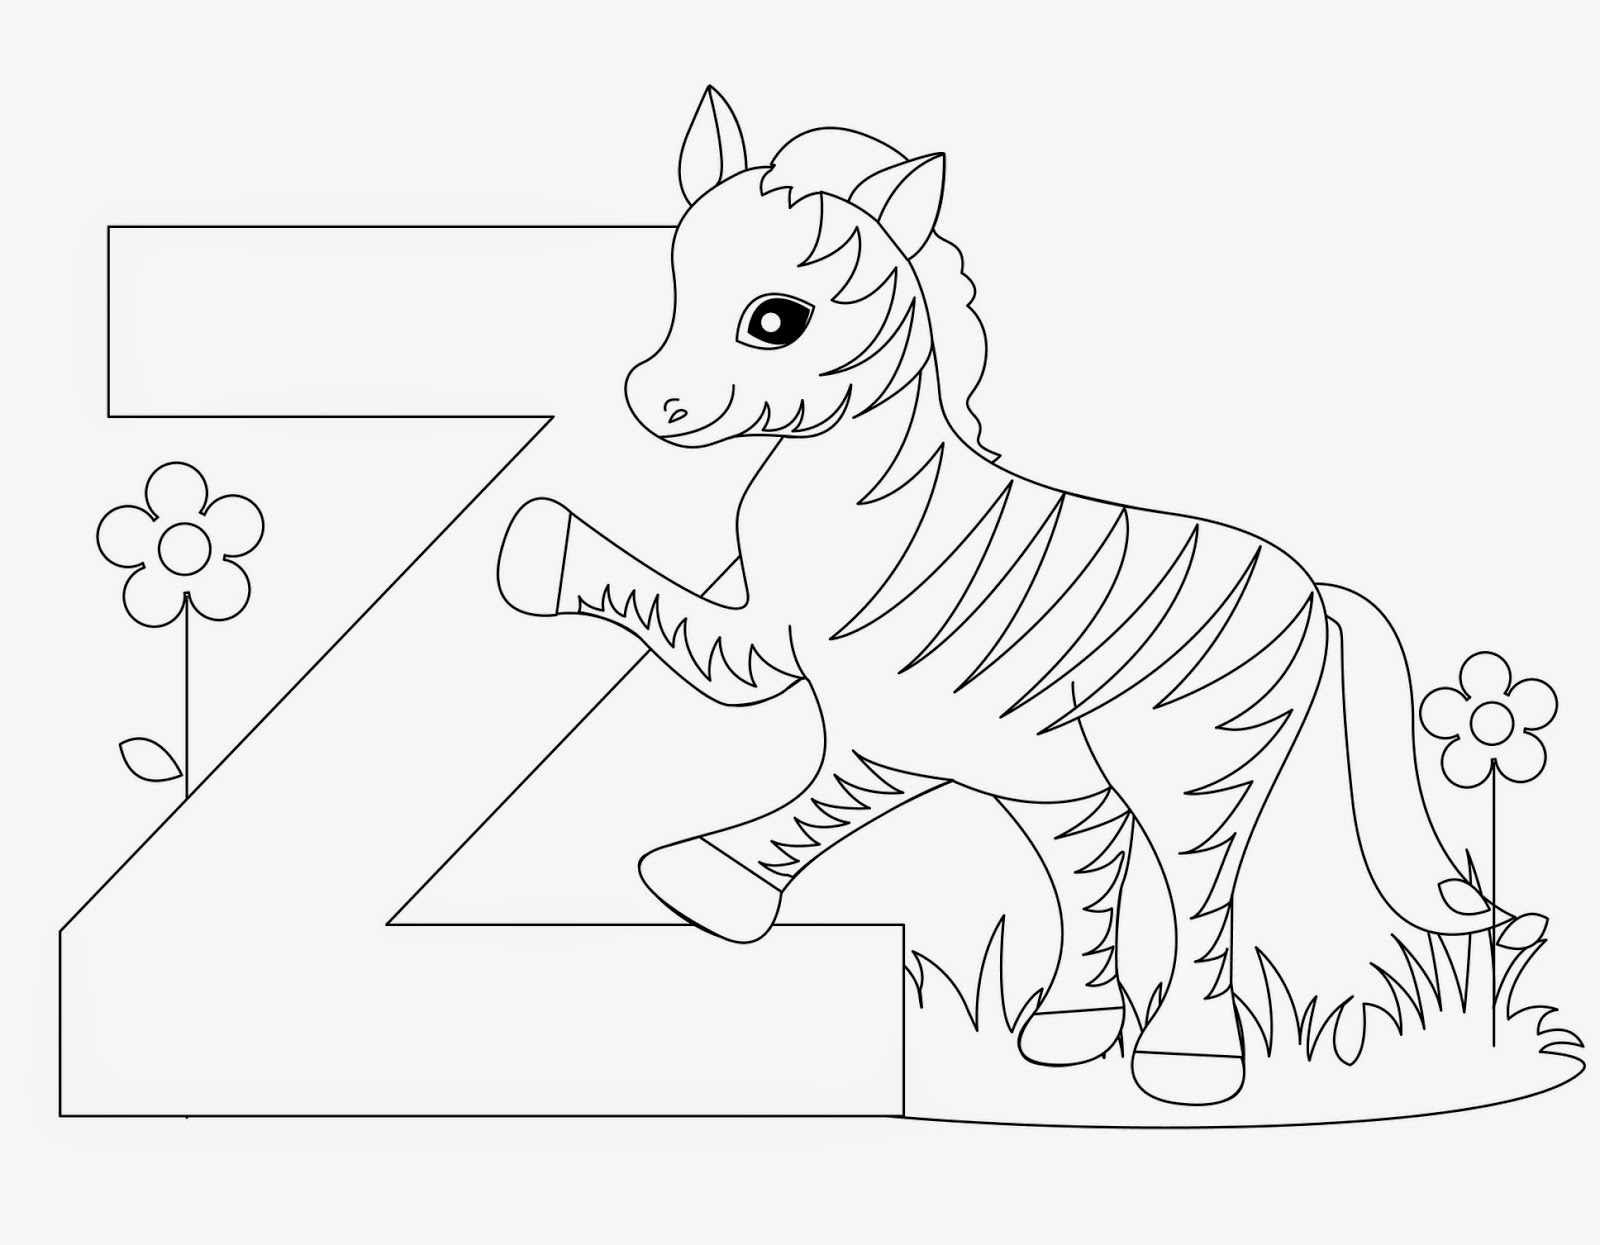 animal abc coloring pages | Kids Page: Z is for Zebra - Animal Alphabet Letters Worksheet